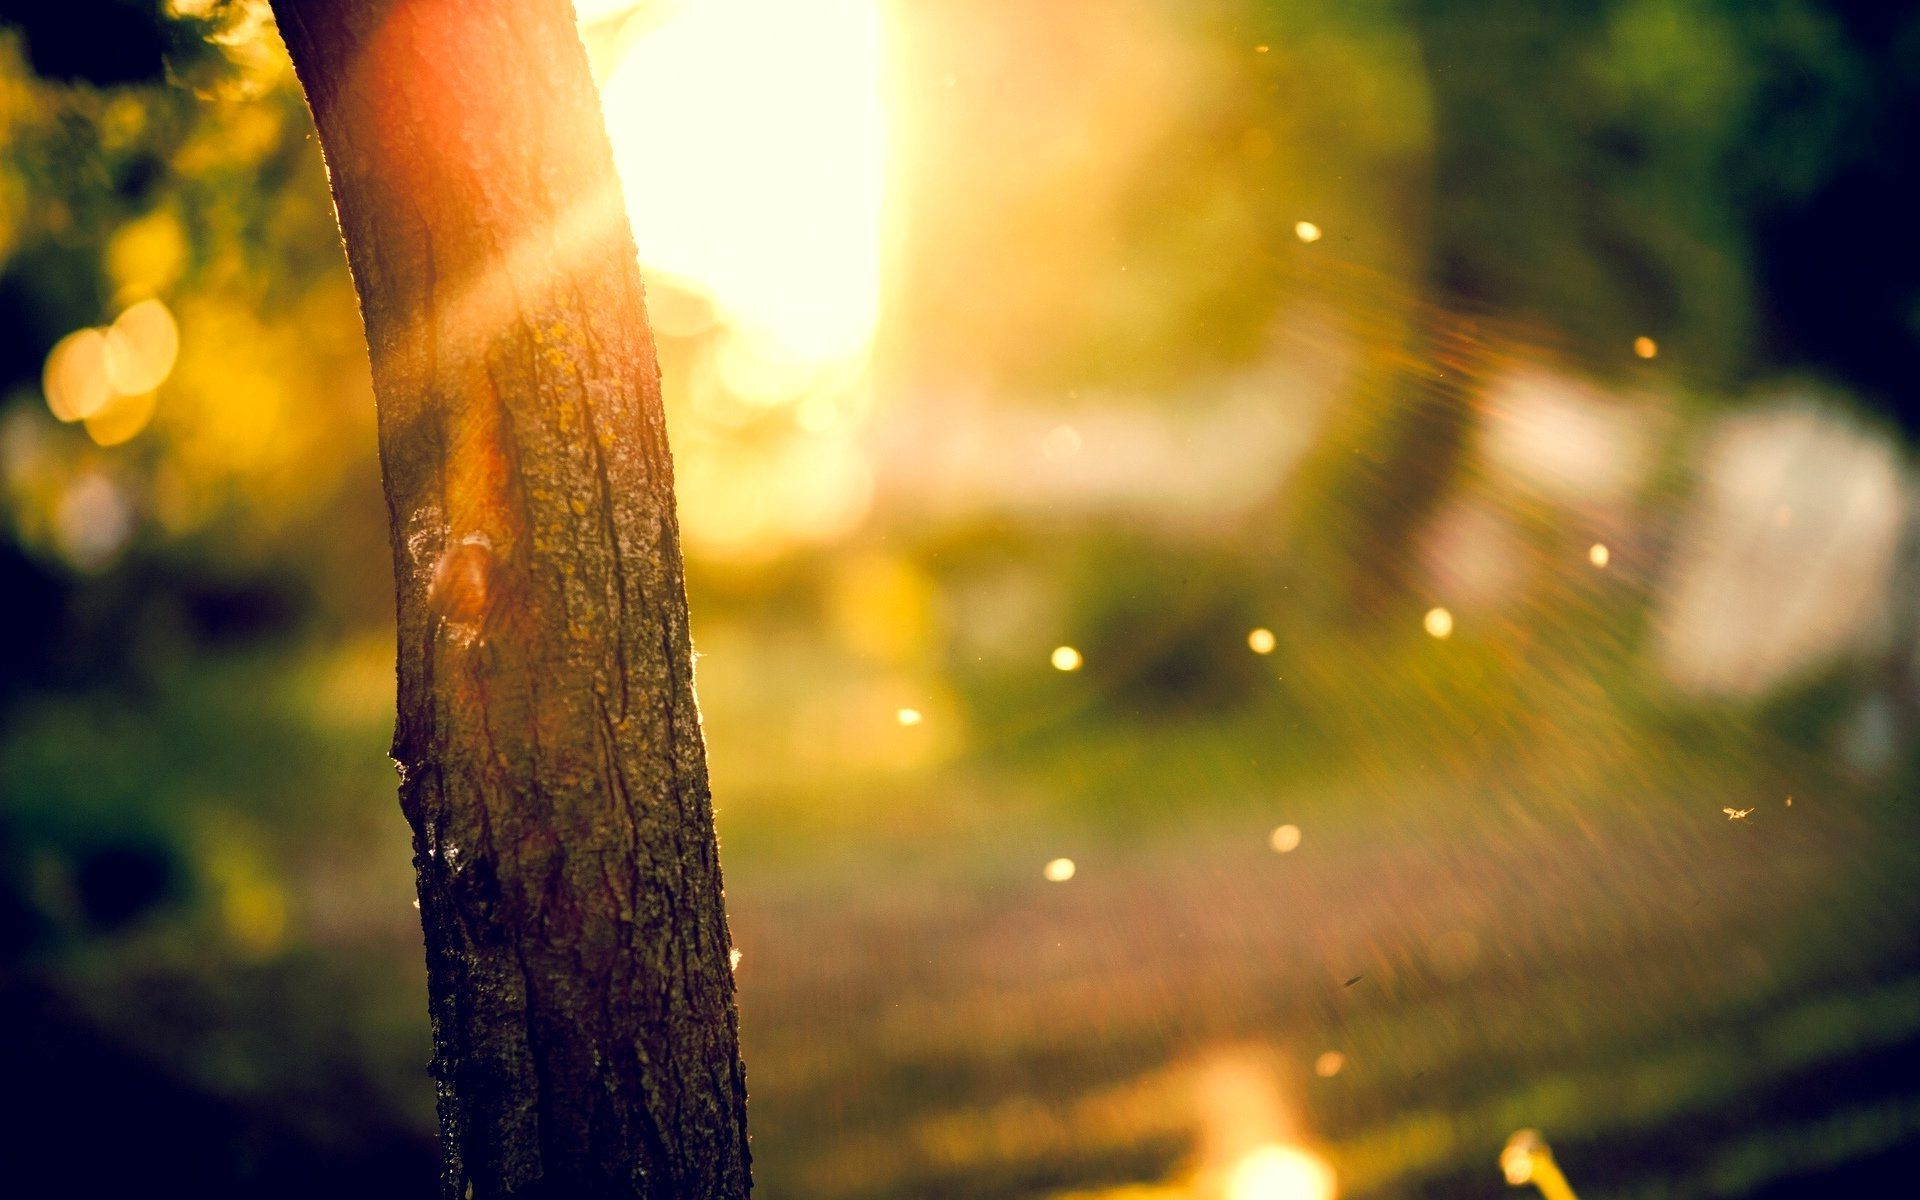 Background Hd Blur Image Close Up Tree Trunk Blur Image Blurred Background Bokeh Background